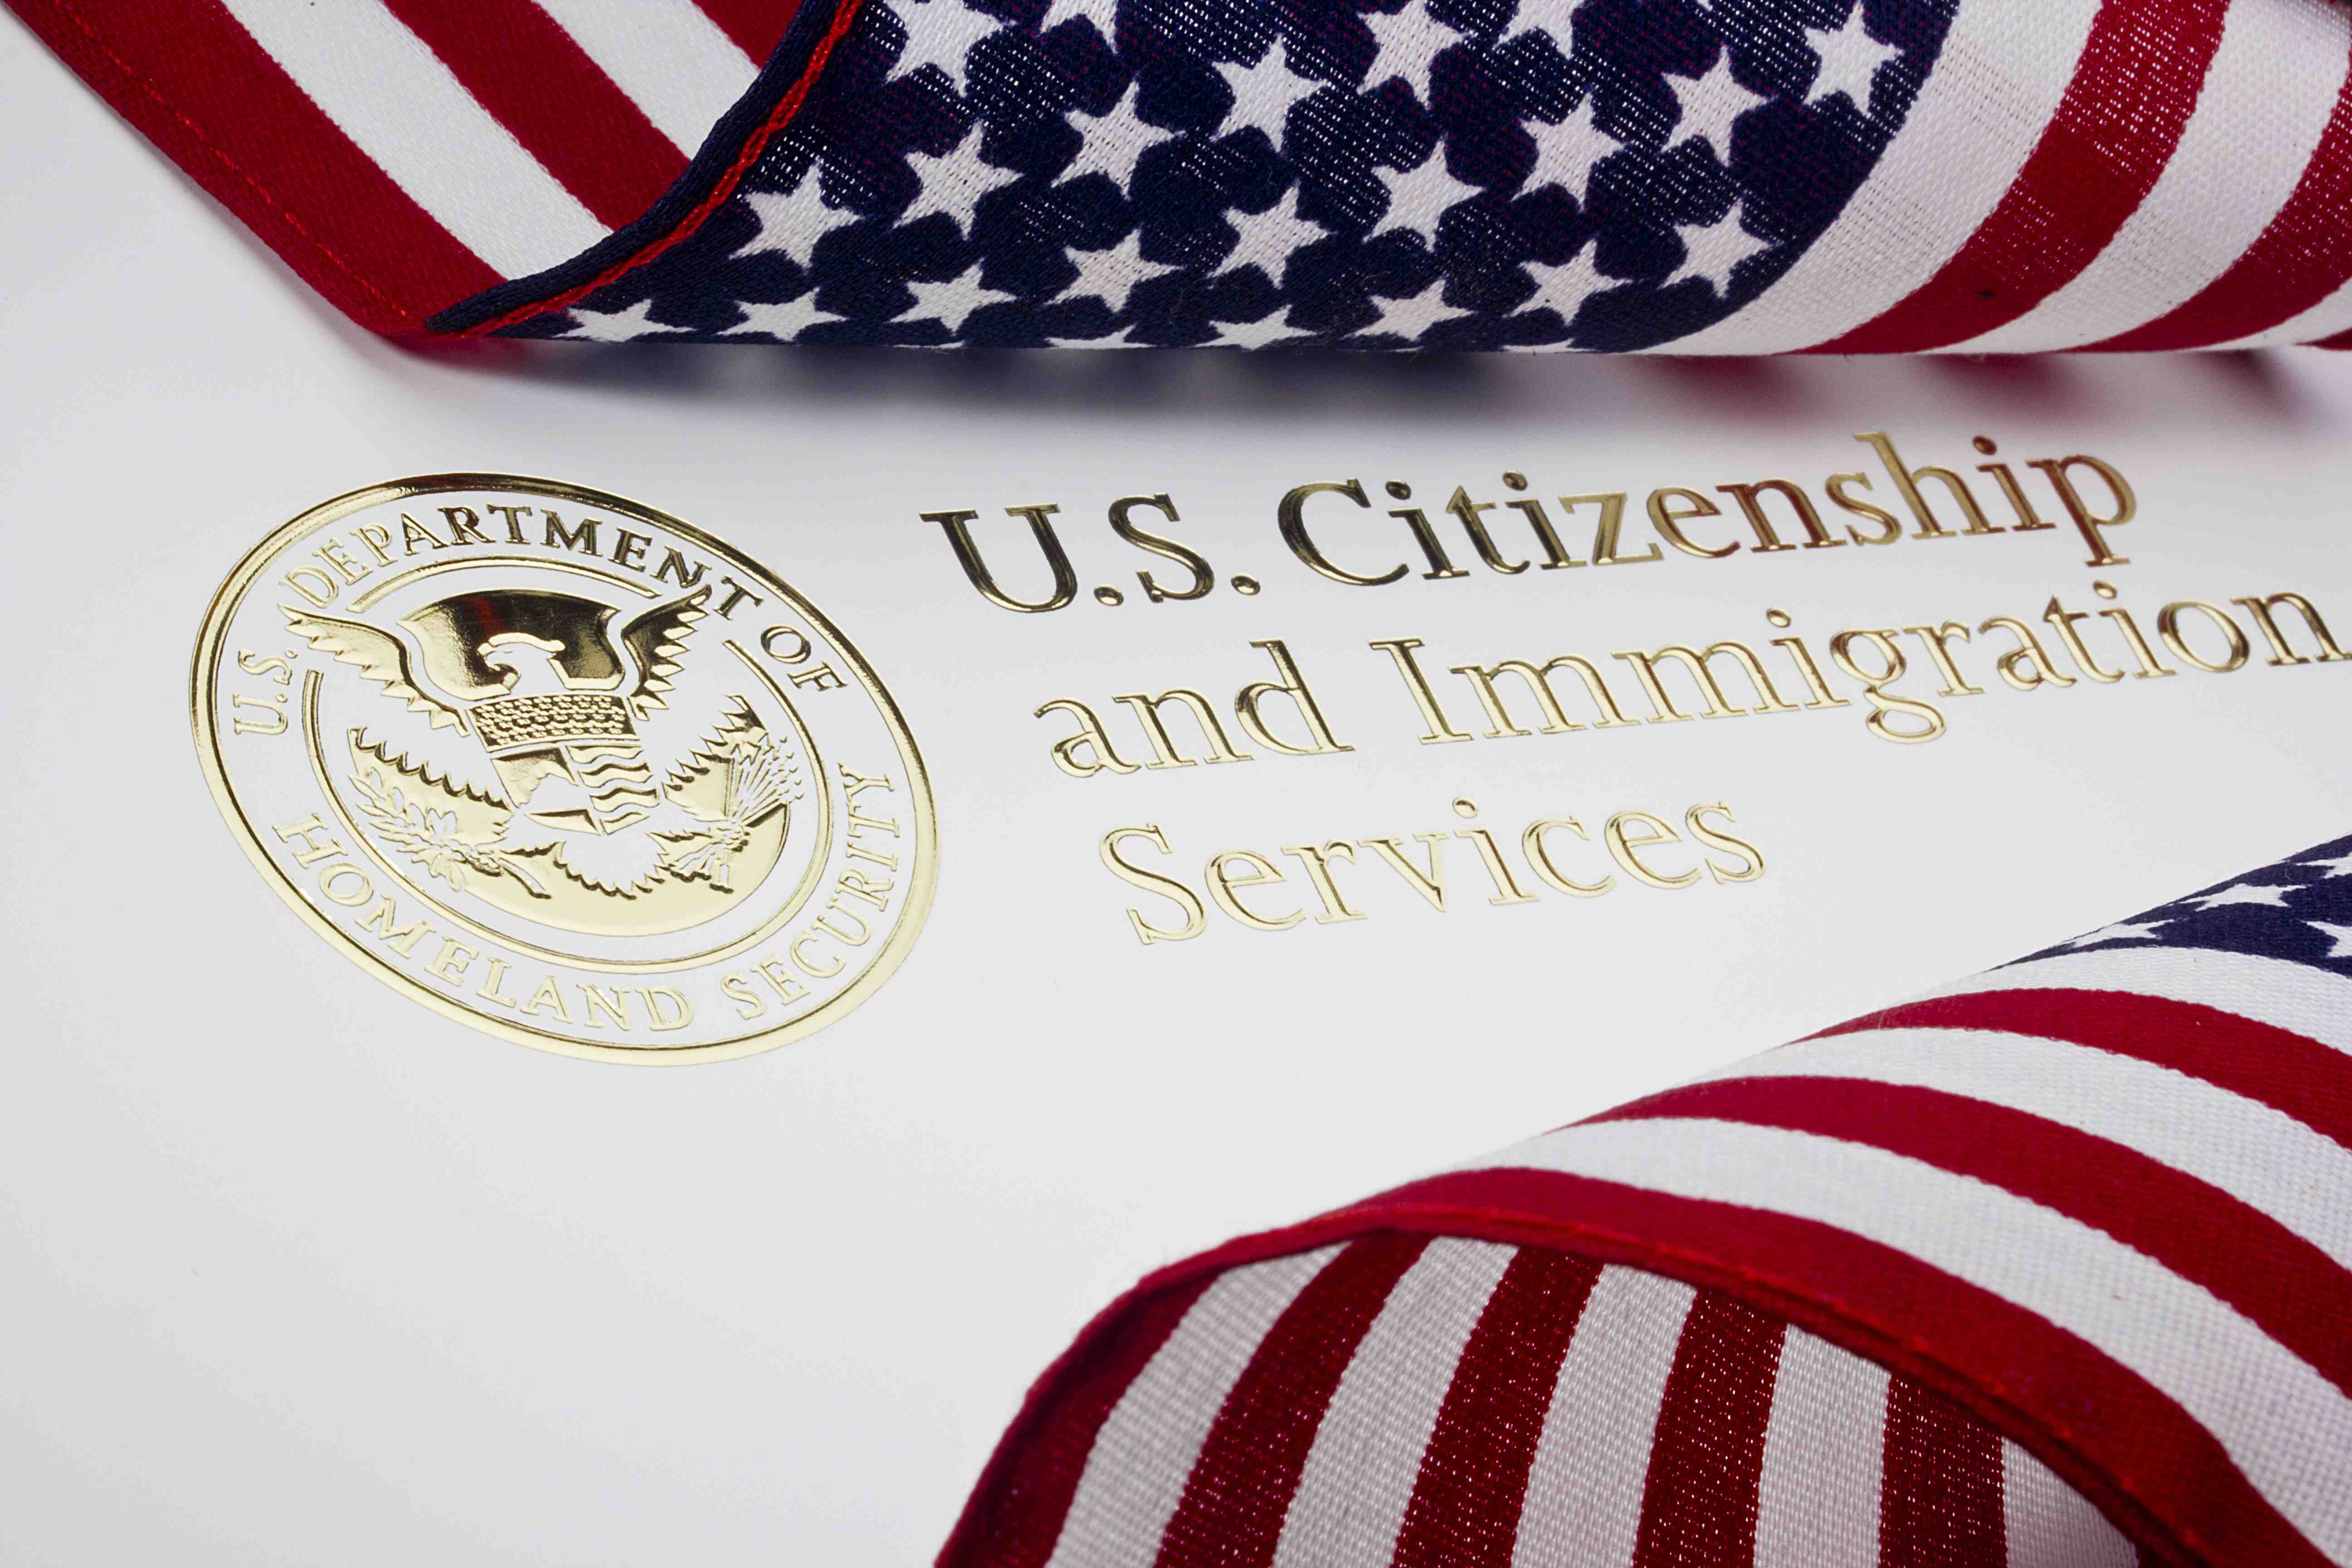 Indians Accounted for More Than 74% of H-1B Visas in 2016, 2017: USCIS Report